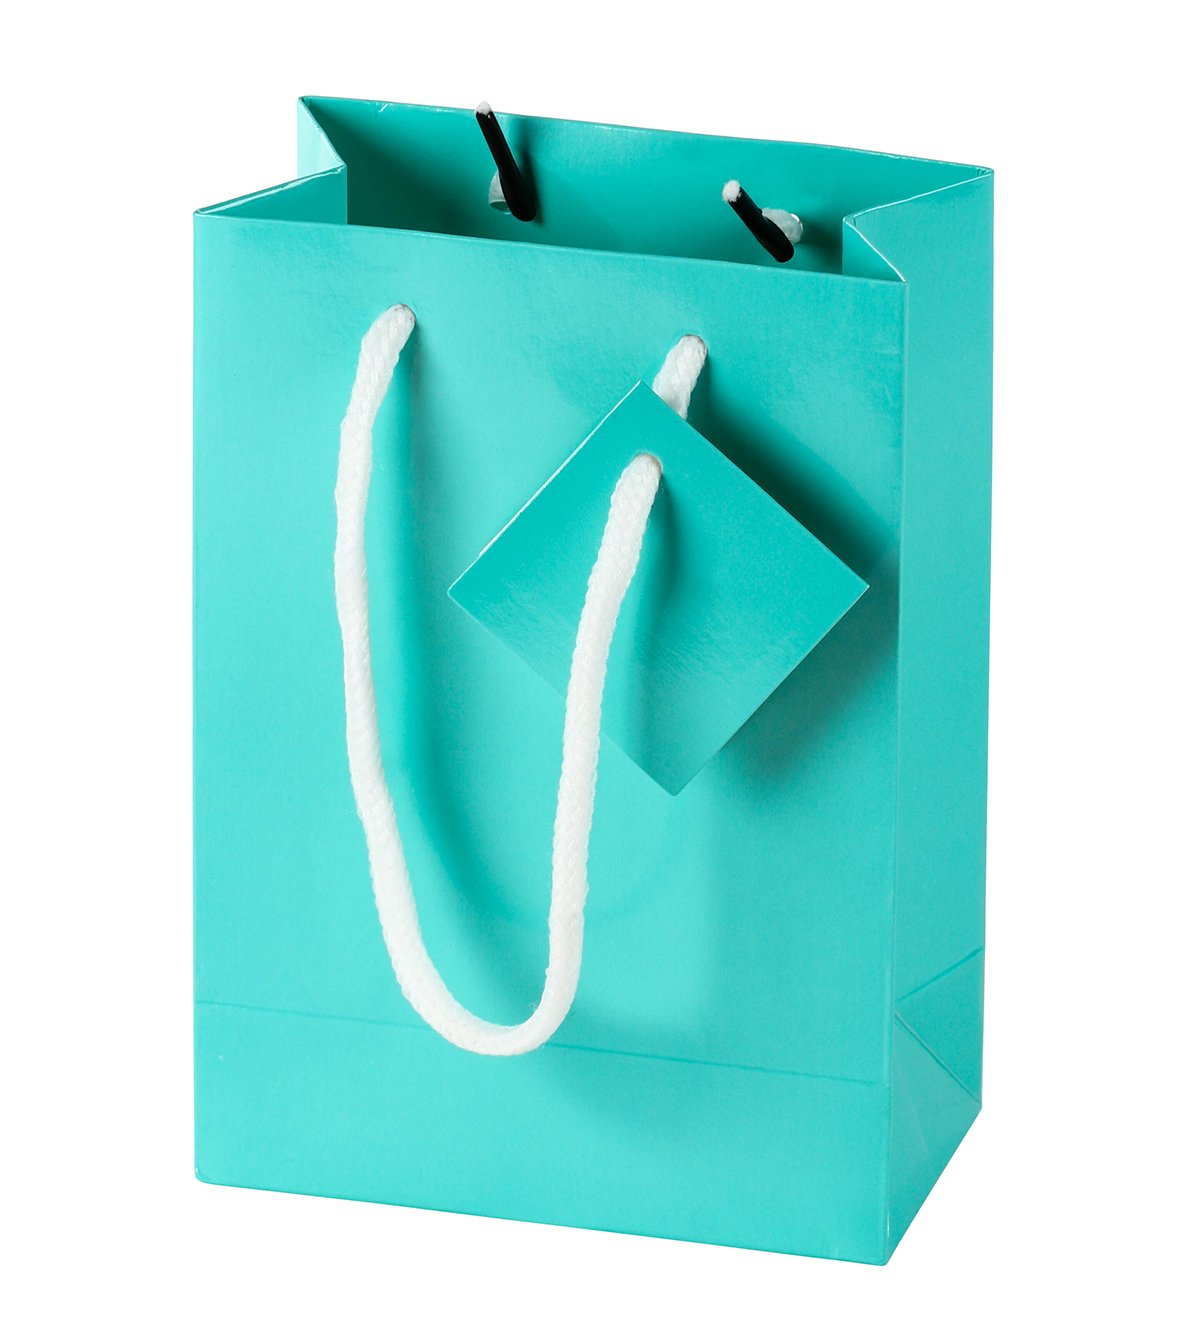 Paper Gift Bag - 20-Pack Small Party Favor Bags, Mini Paper Bags, Tissue Paper Included, Glossy Finish Teal Color, 4.75 x 6.75 x 2.5 inches by Blue Panda (Image #2)